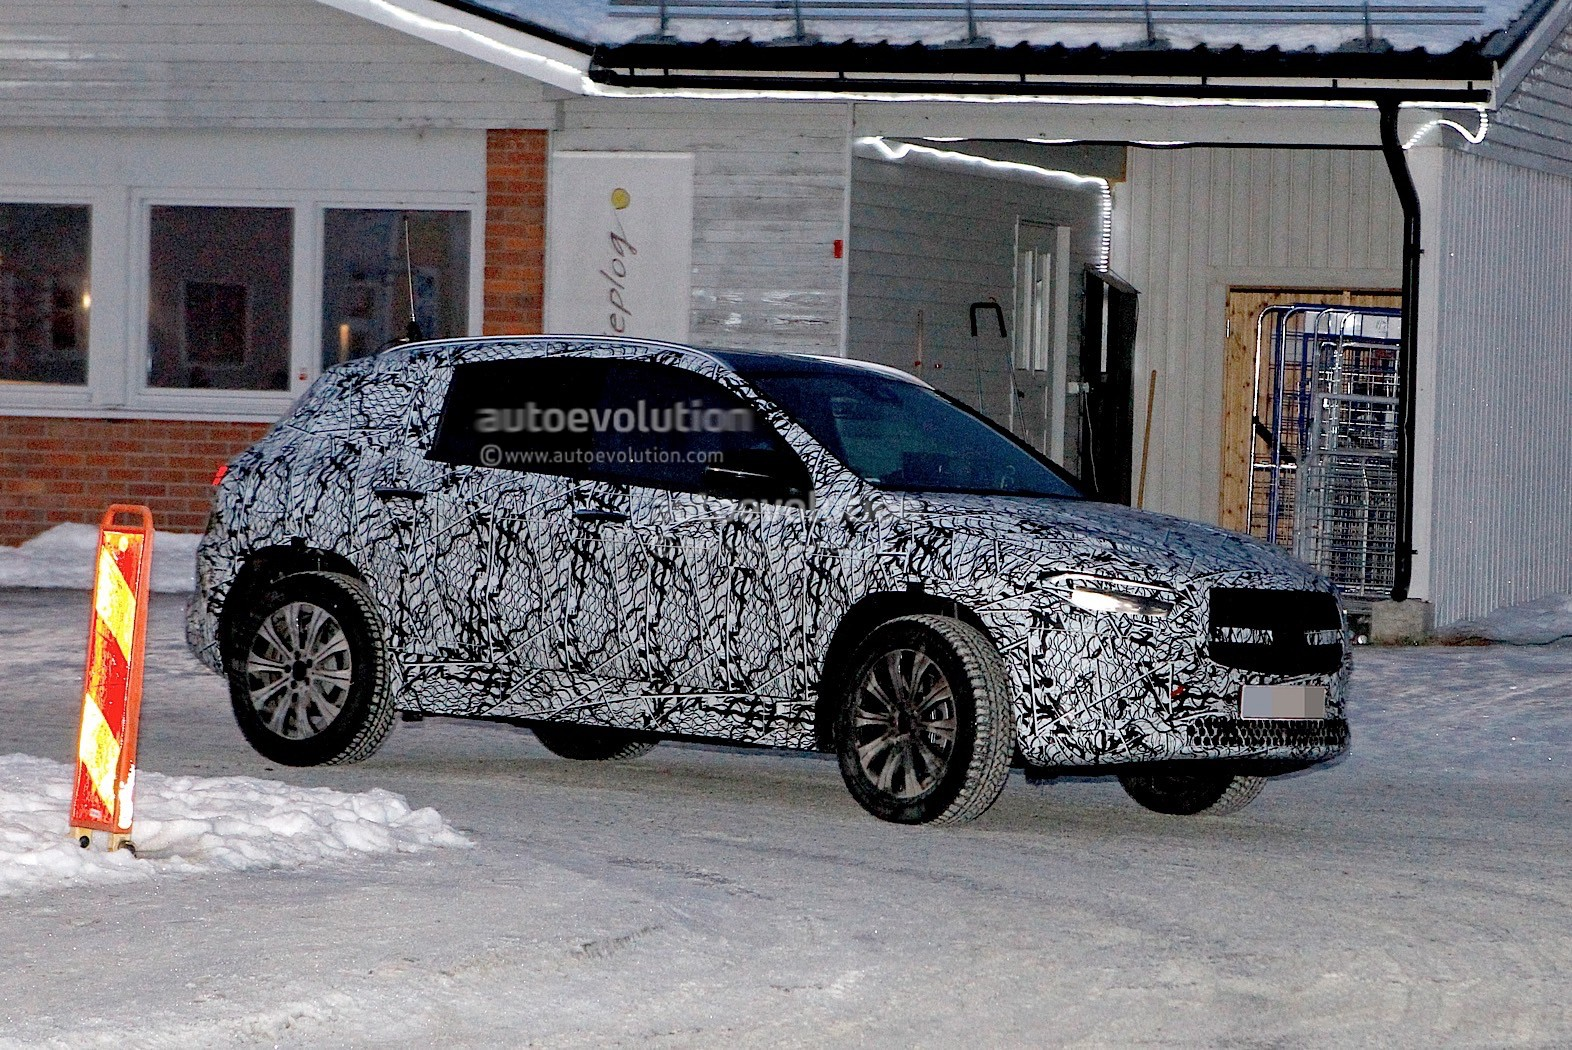 Next-gen Mercedes-Benz GLA unveiled